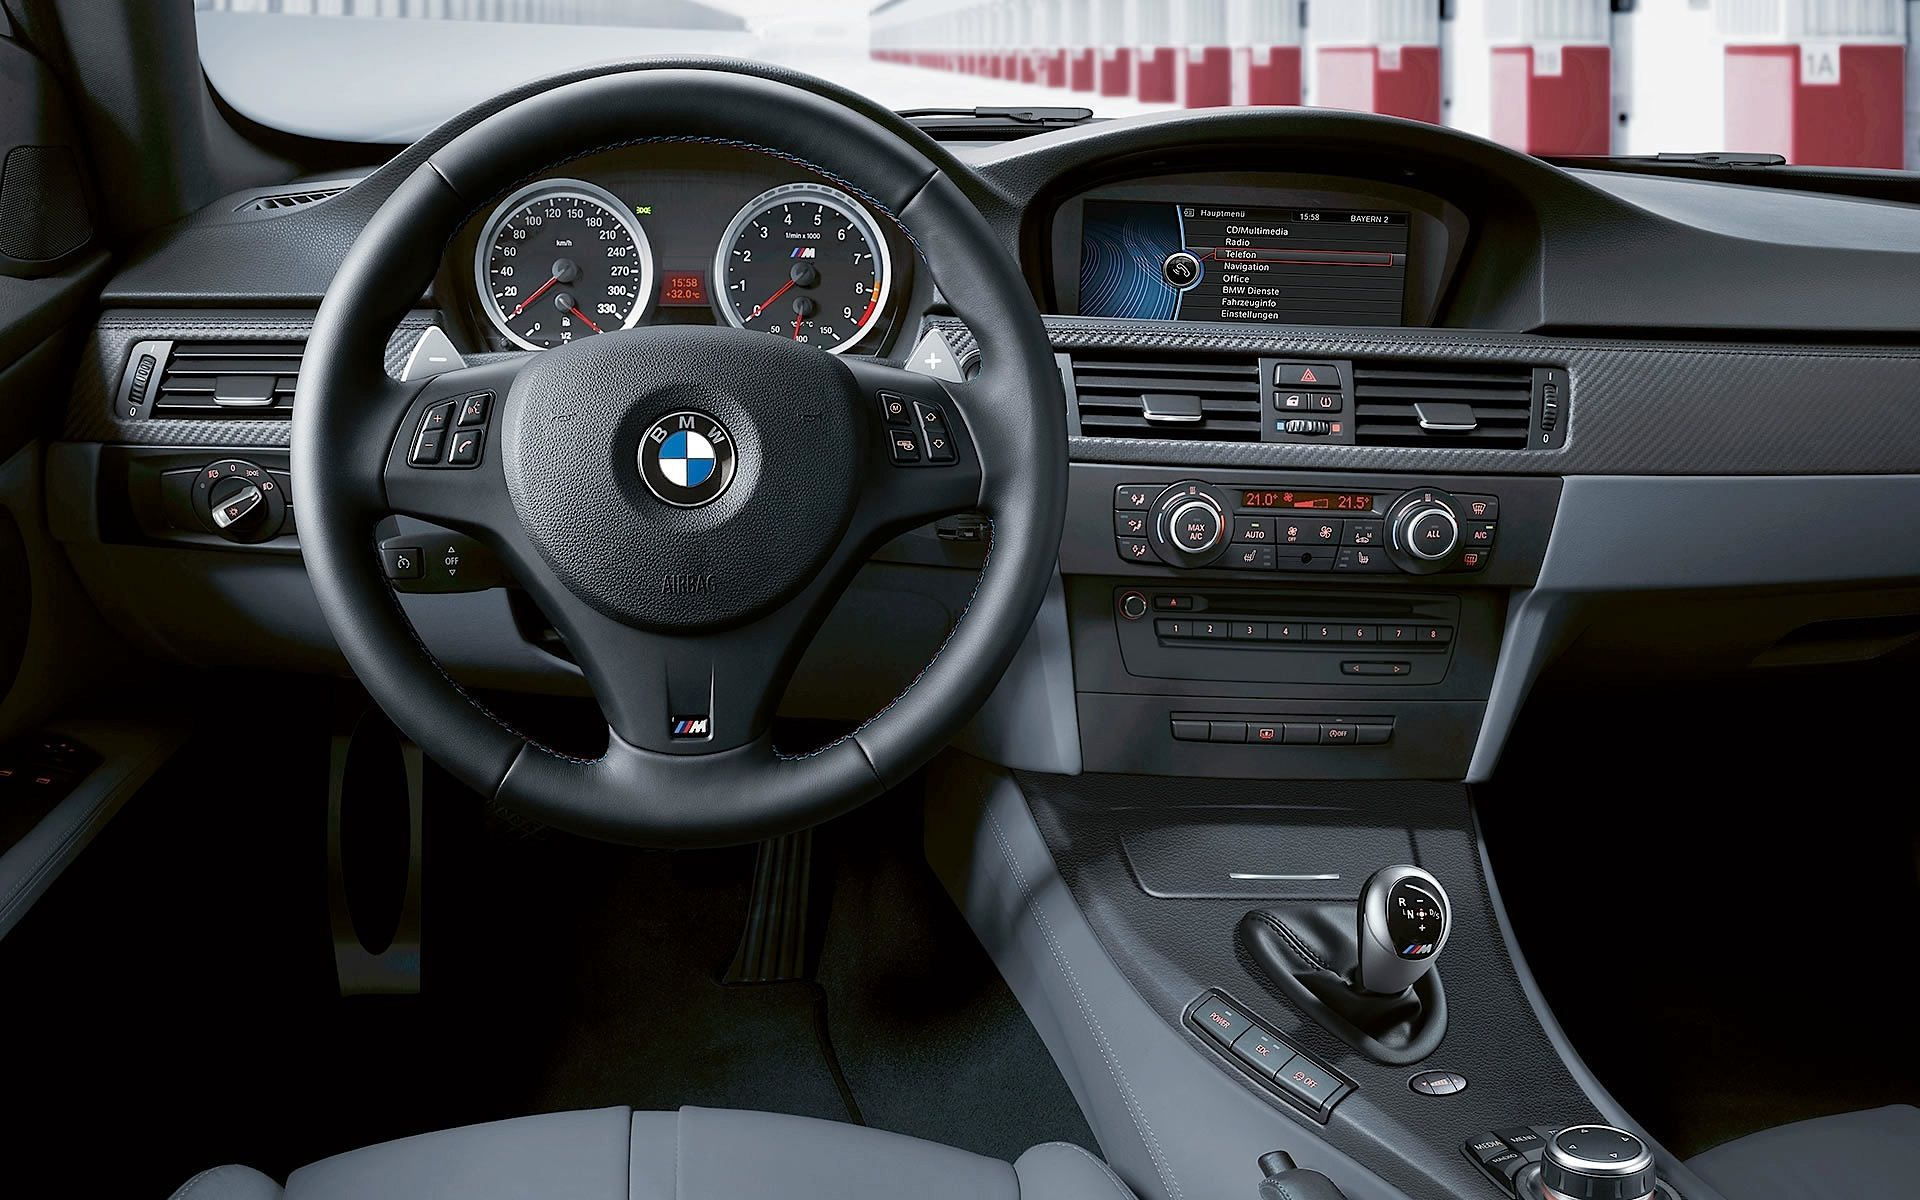 Bmw M3 E92 Interior With Images Bmw M3 Bmw M3 Coupe Bmw